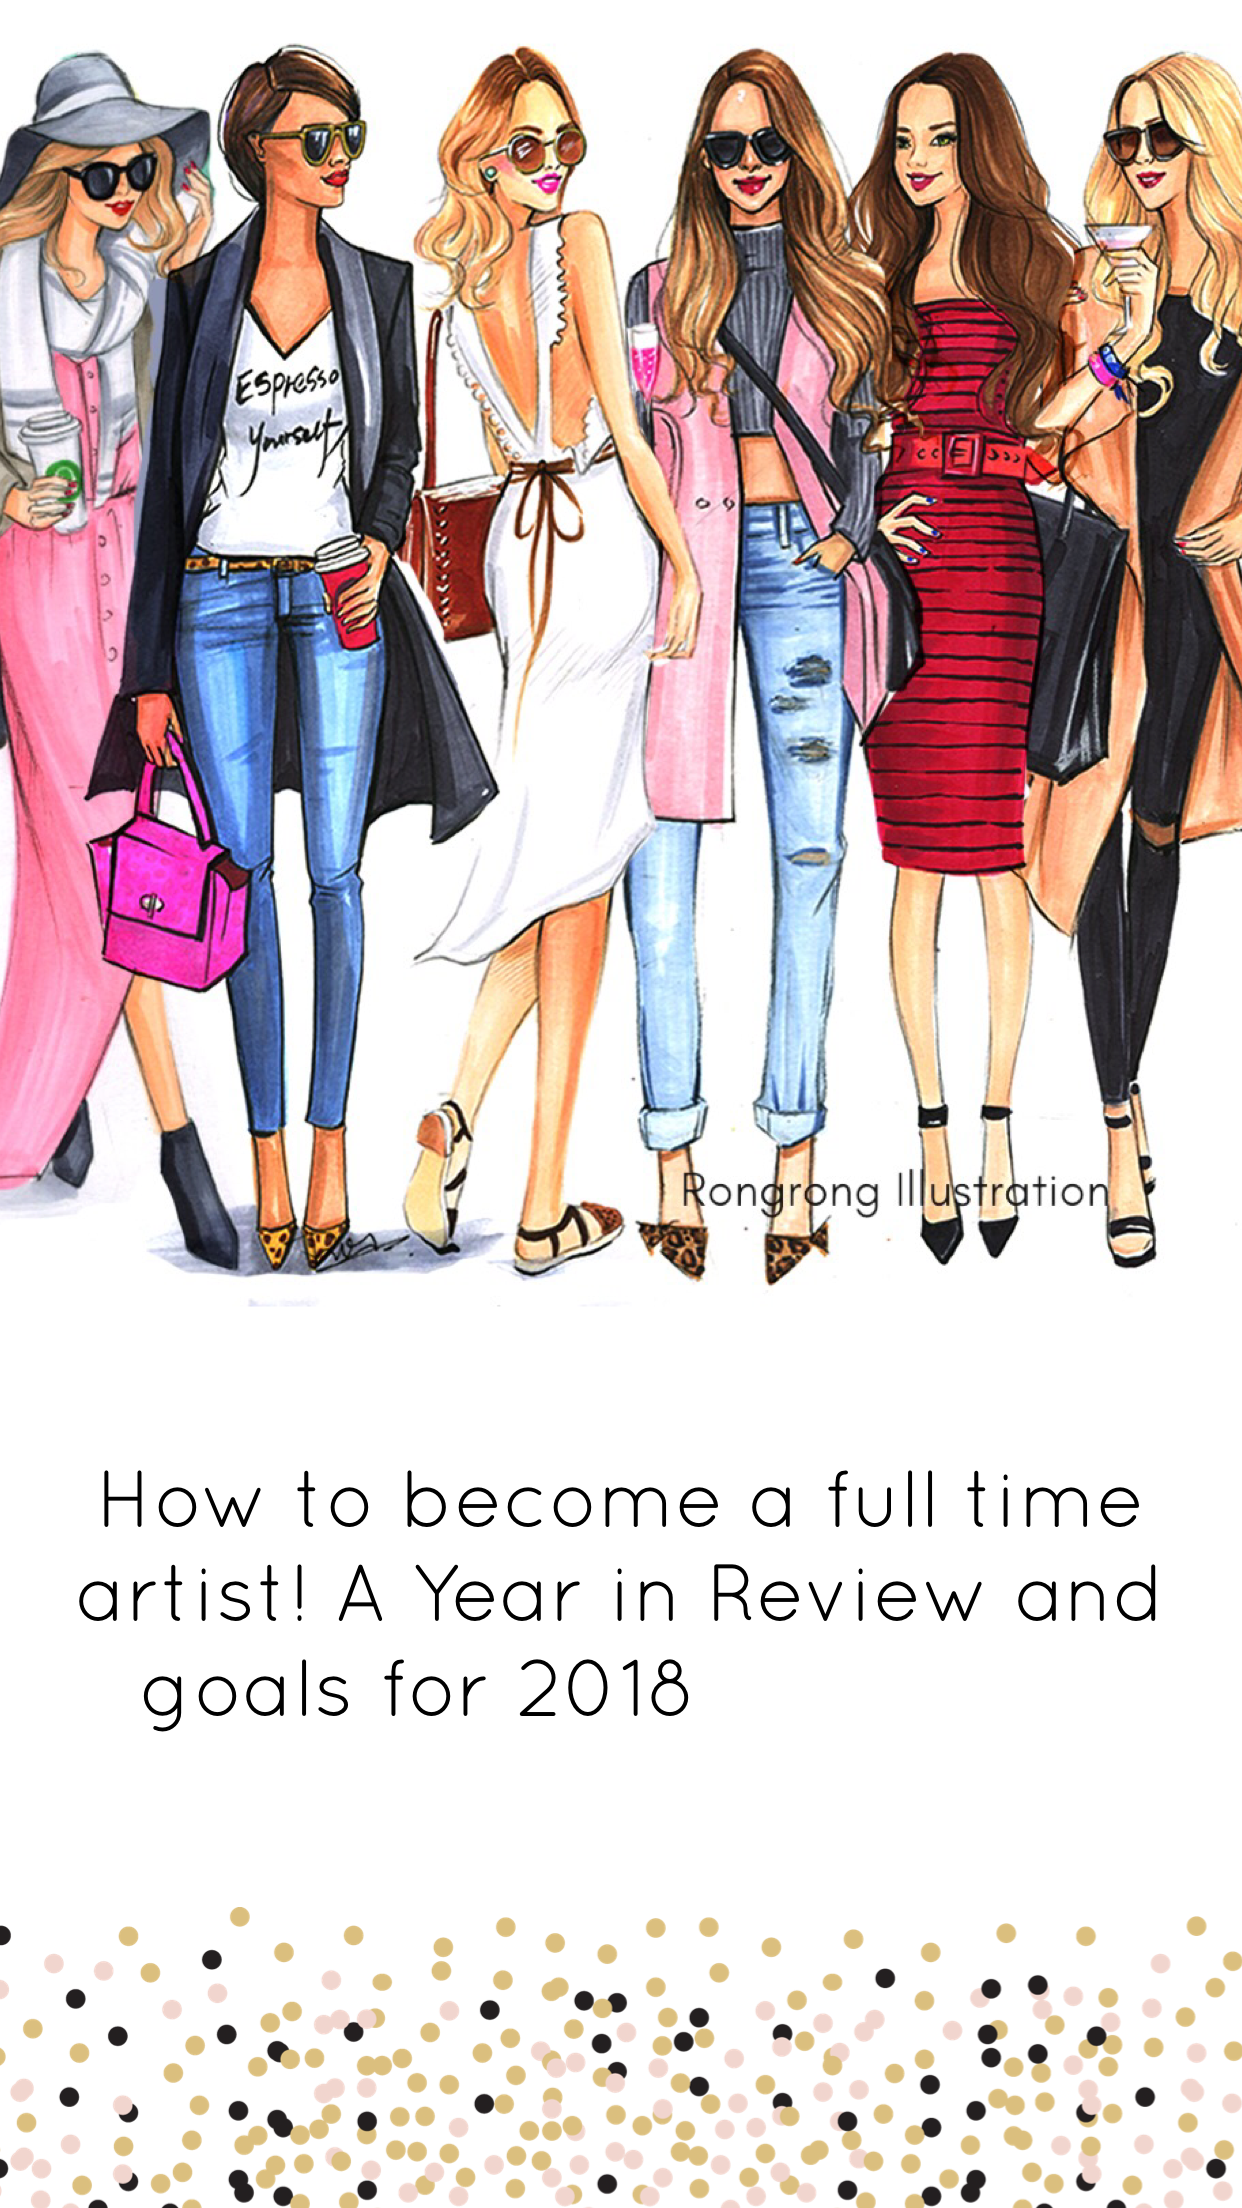 Fashionista drawing handmade. How to become a